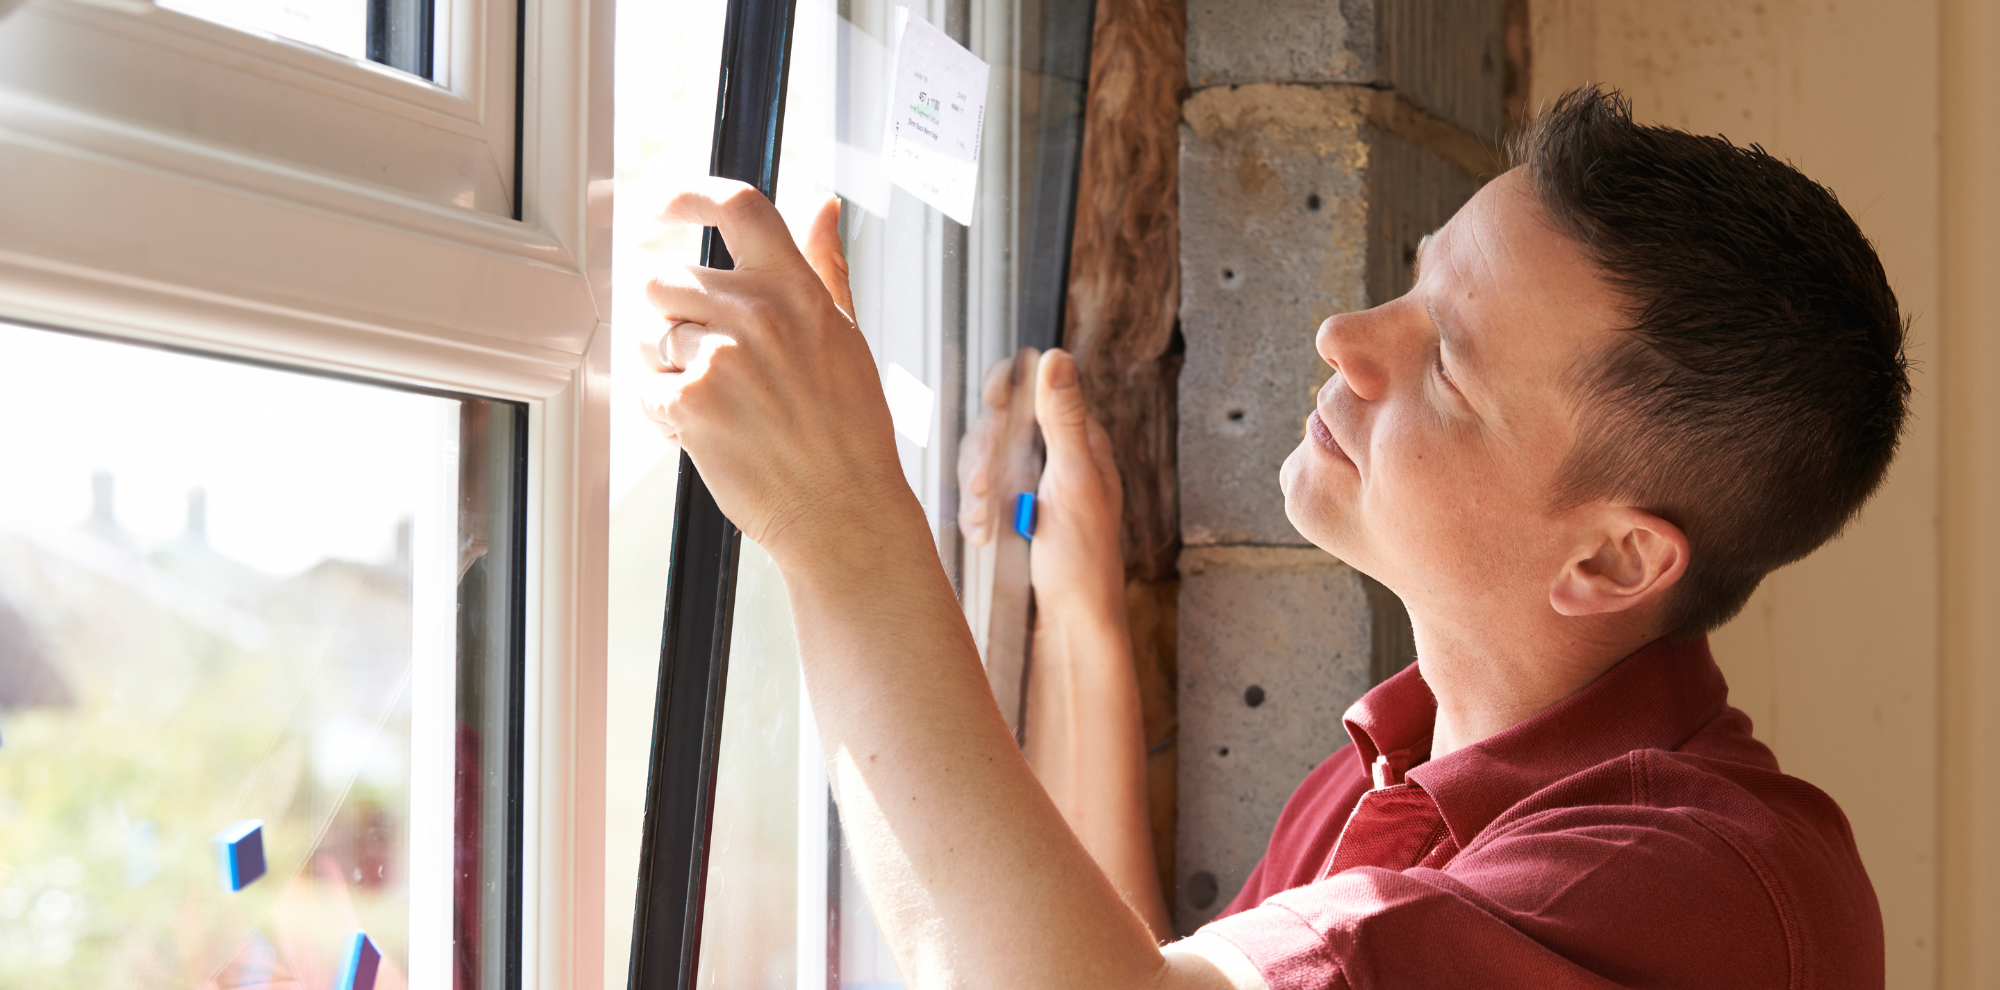 Category Preview - <h4>NVQ LEVEL 3<br><strong>DIPLOMA IN FENESTRATION INSTALLATION<br></strong>£750 + FREE CSCS CARD</h4>